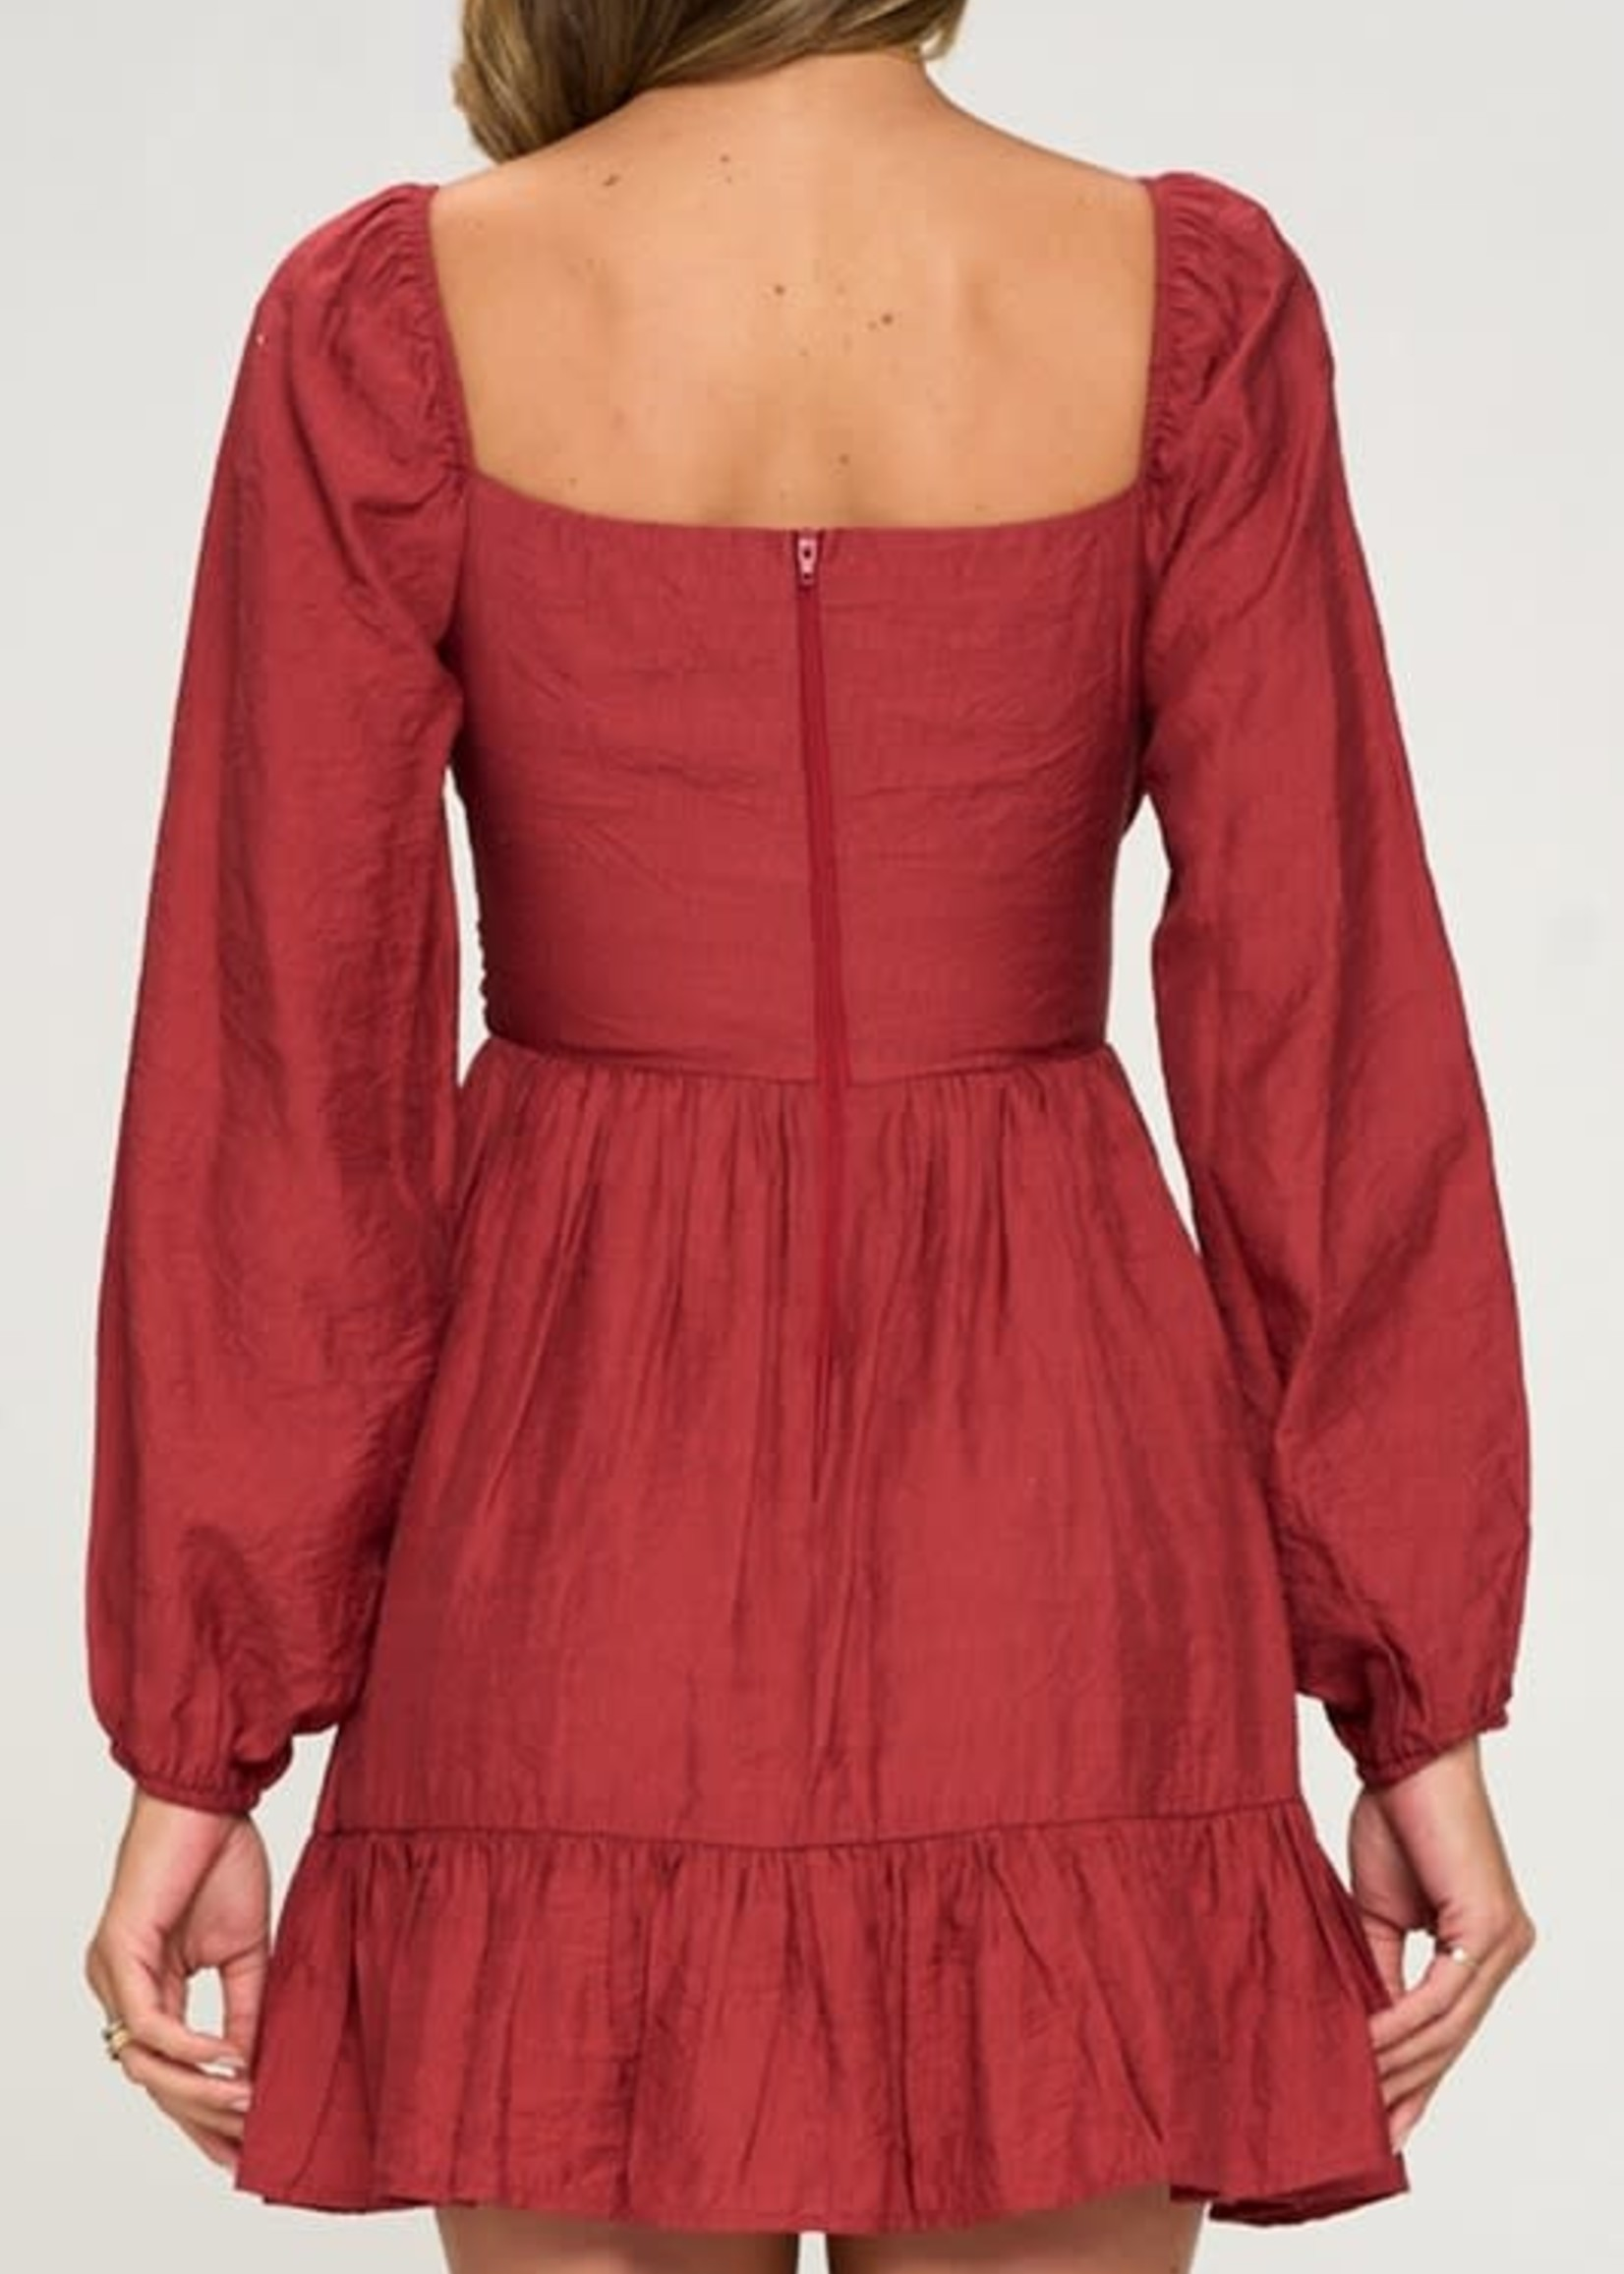 Fall For The Best Dress (2 Colors)